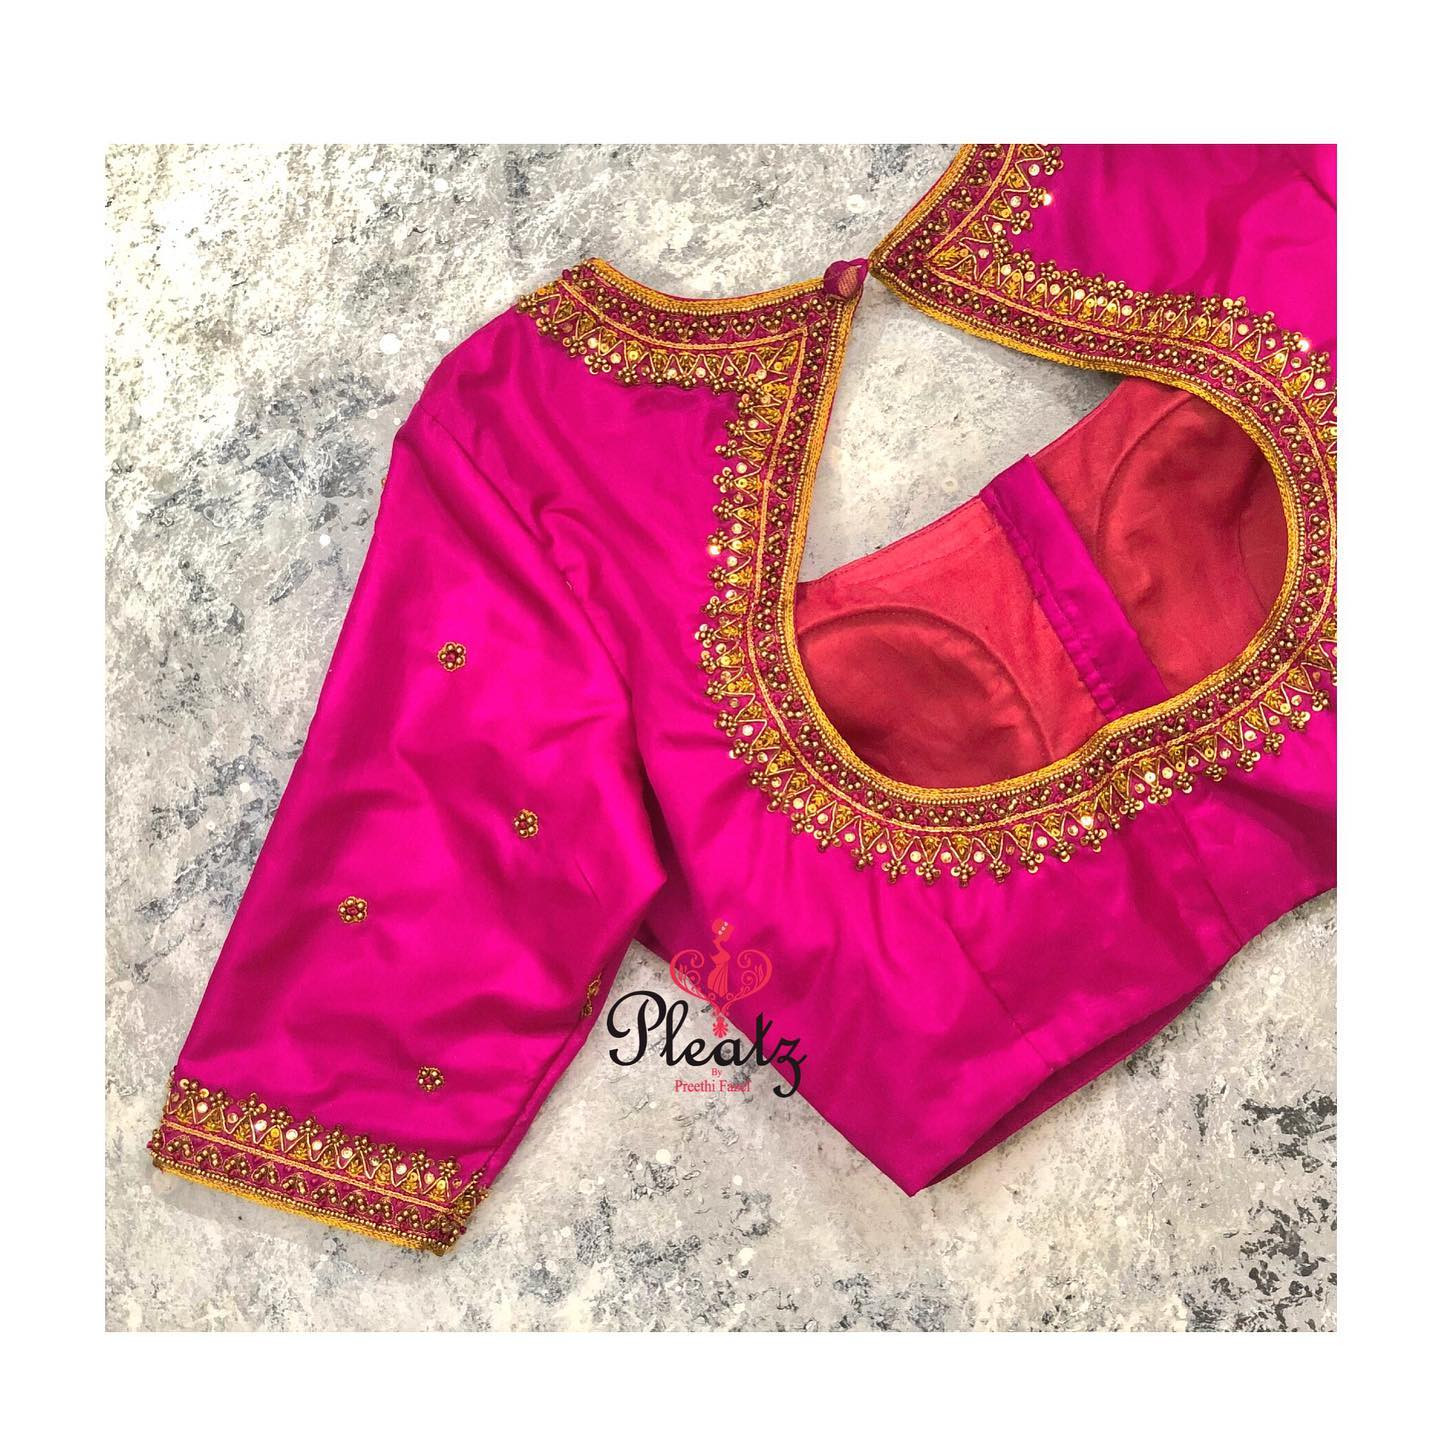 Beautifully designed and handcrafted blouses with intricate embroidery details will definitely steal everyone's heart. Artistically curated bridal blouses can add an additional charm to the whole bridal look on your Wedding day 2021-01-05